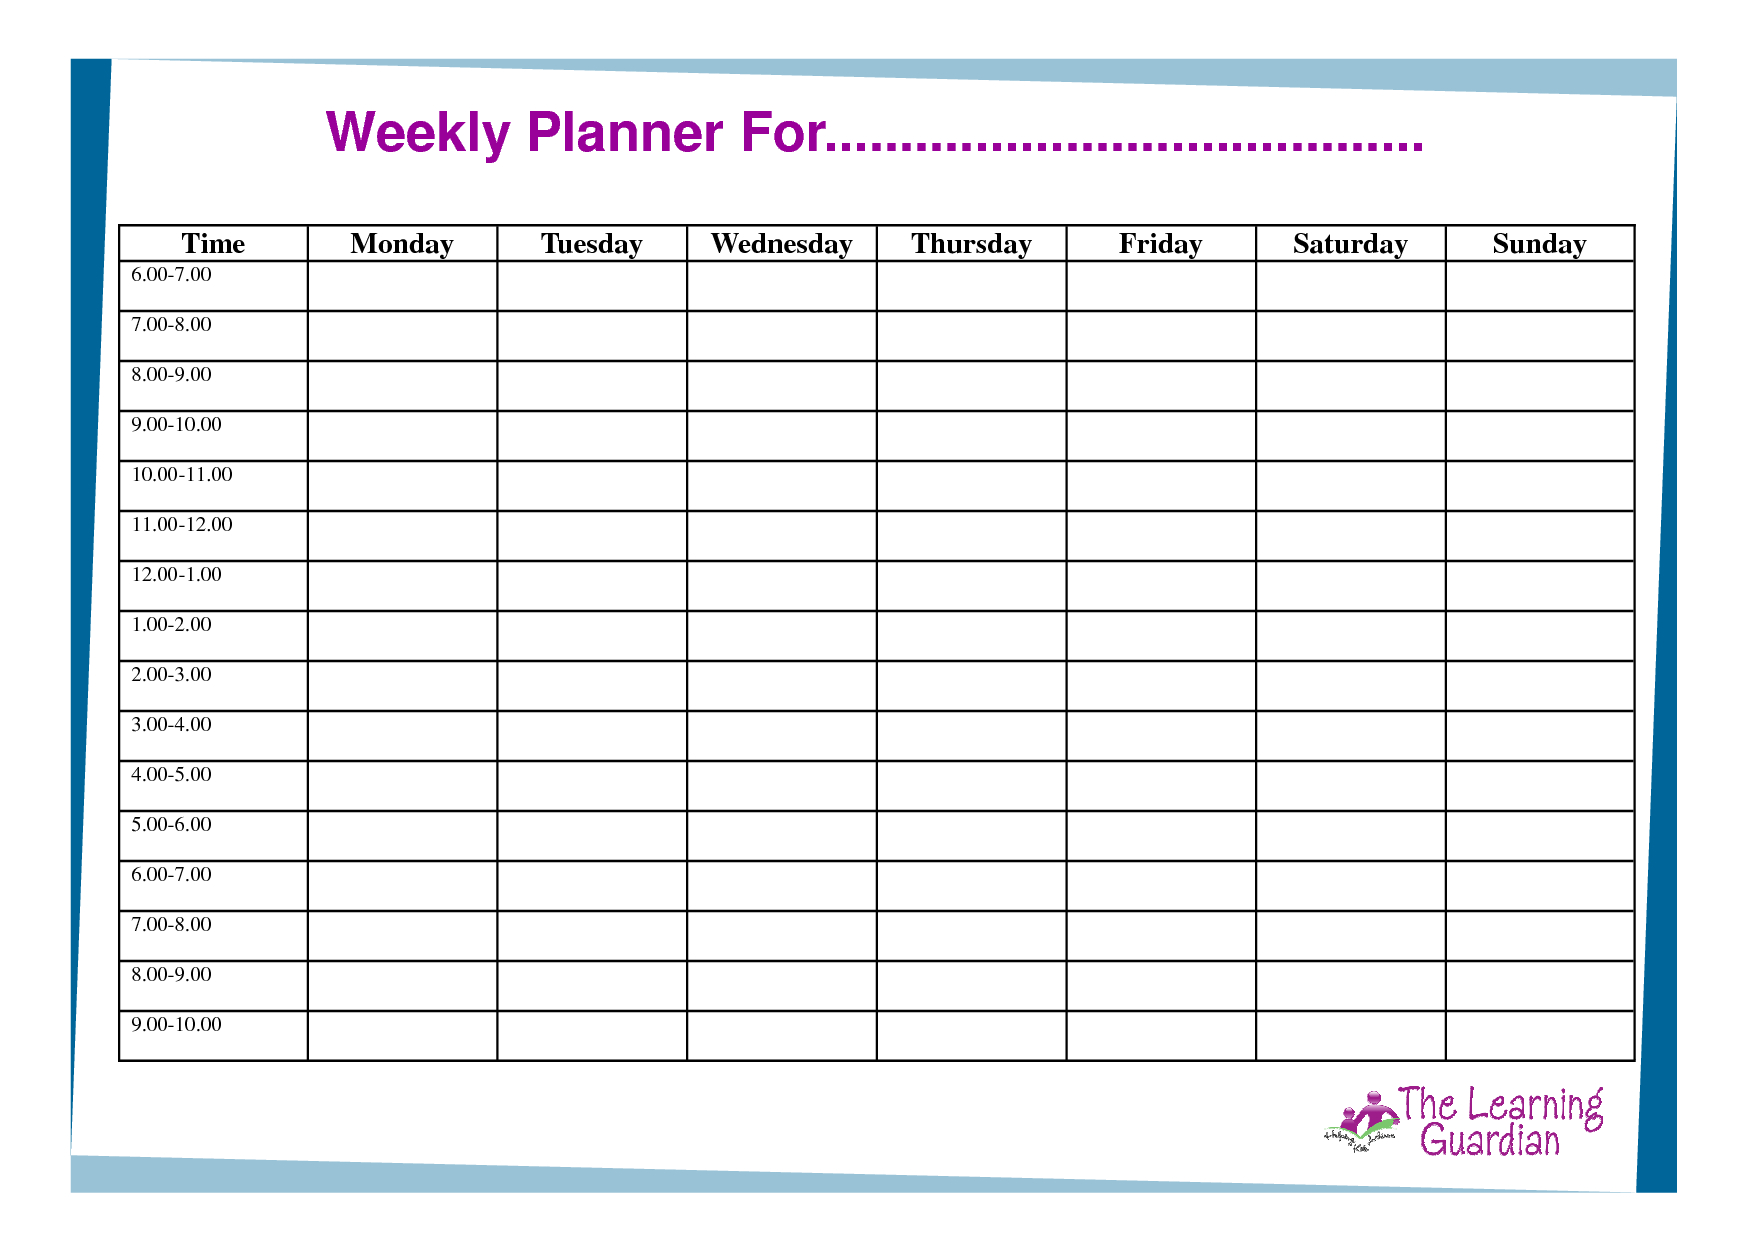 Weekly Calendar Tes With Times Blank Te Of The Day Planner Schedule pertaining to Blank Schedule Sheet With Times